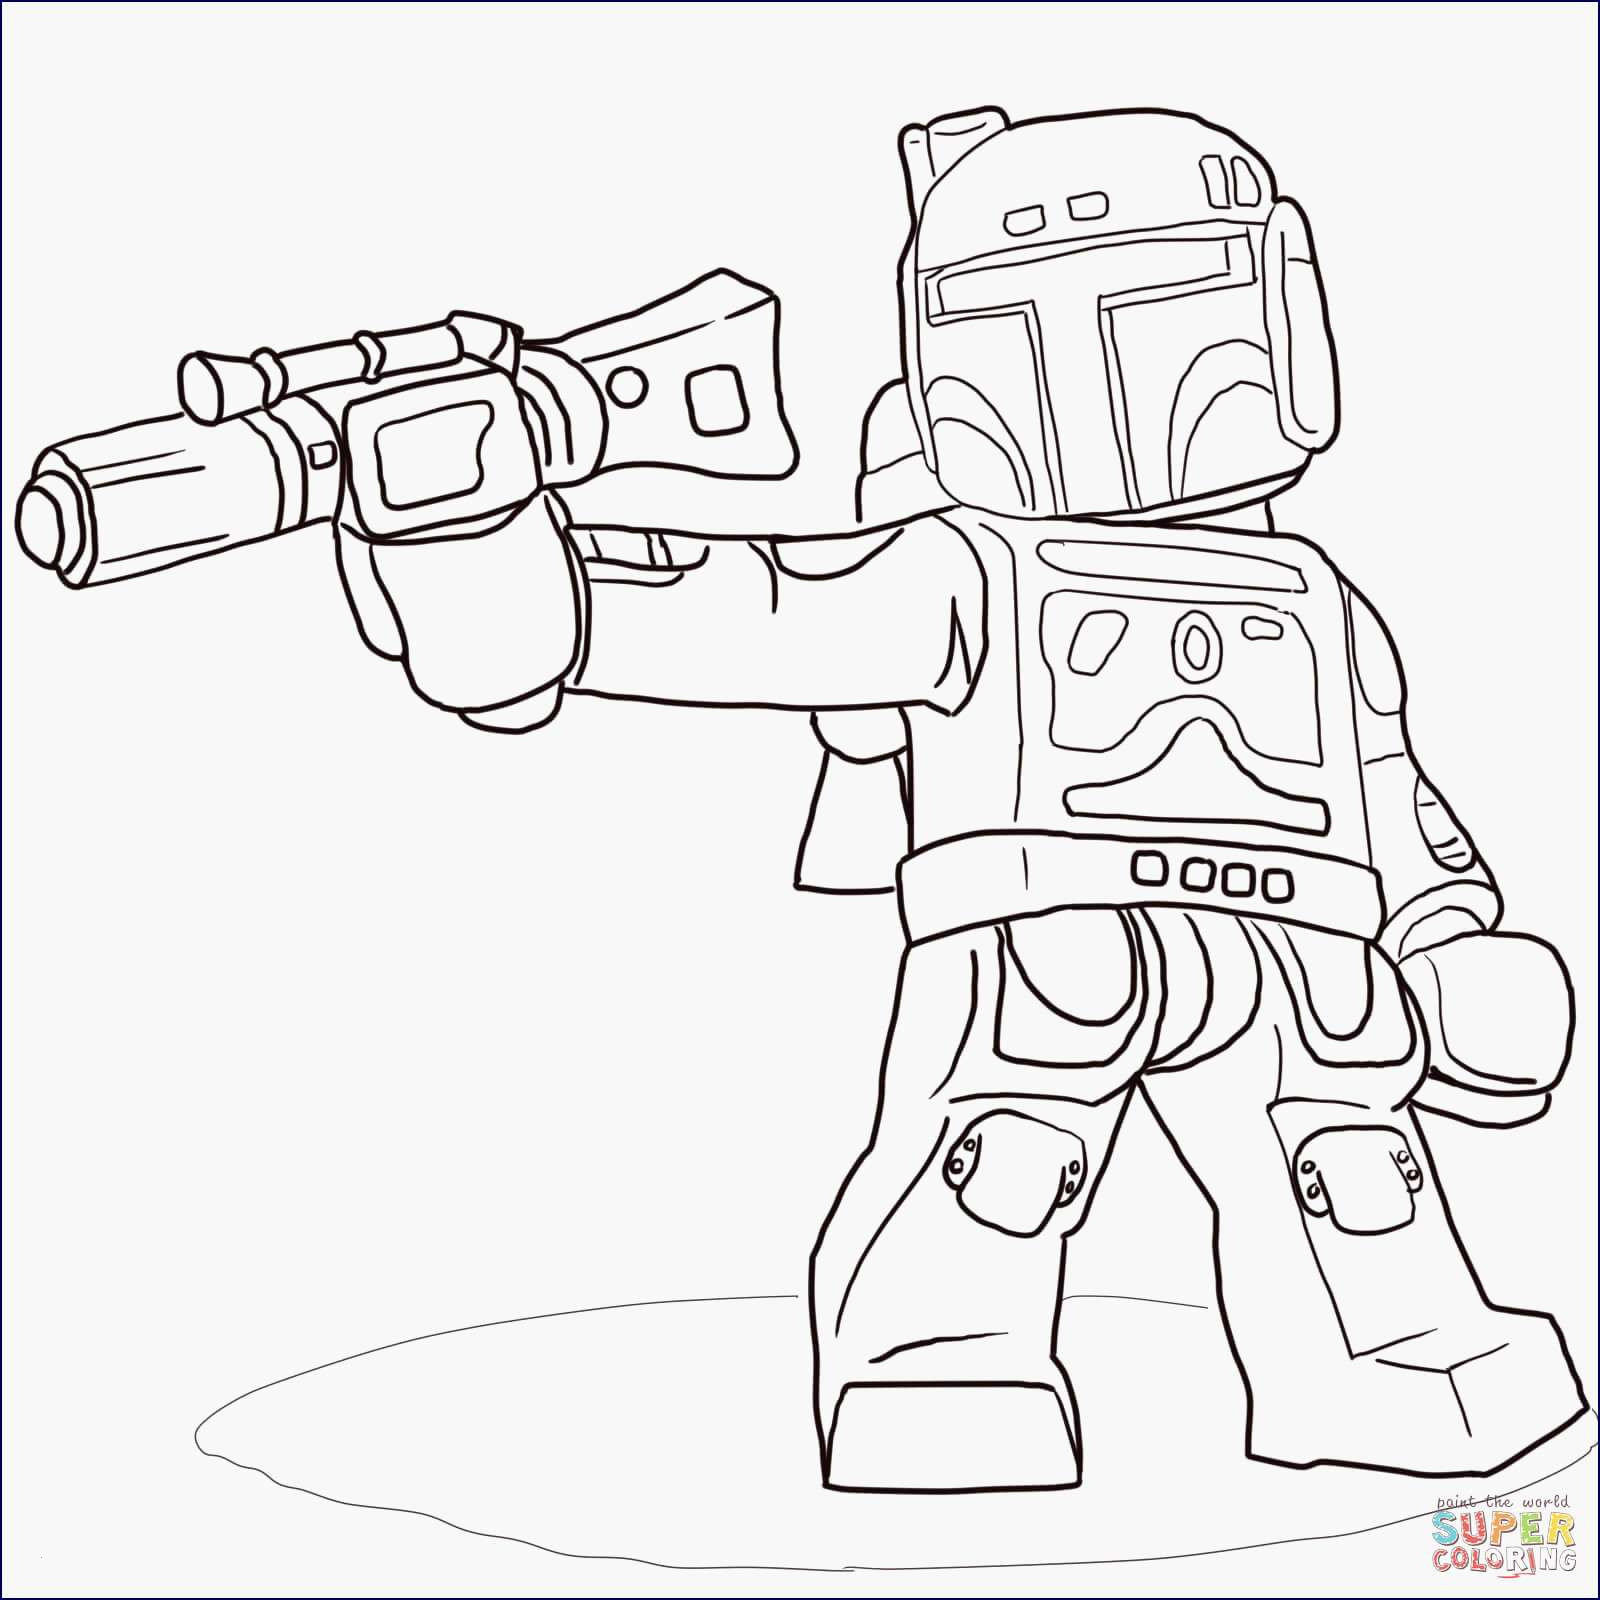 Star Wars Ausmalbilder Darth Vader Frisch Star Wars Ausmalbilder Darth Vader Schön Coloring Pages for Boys Fotos